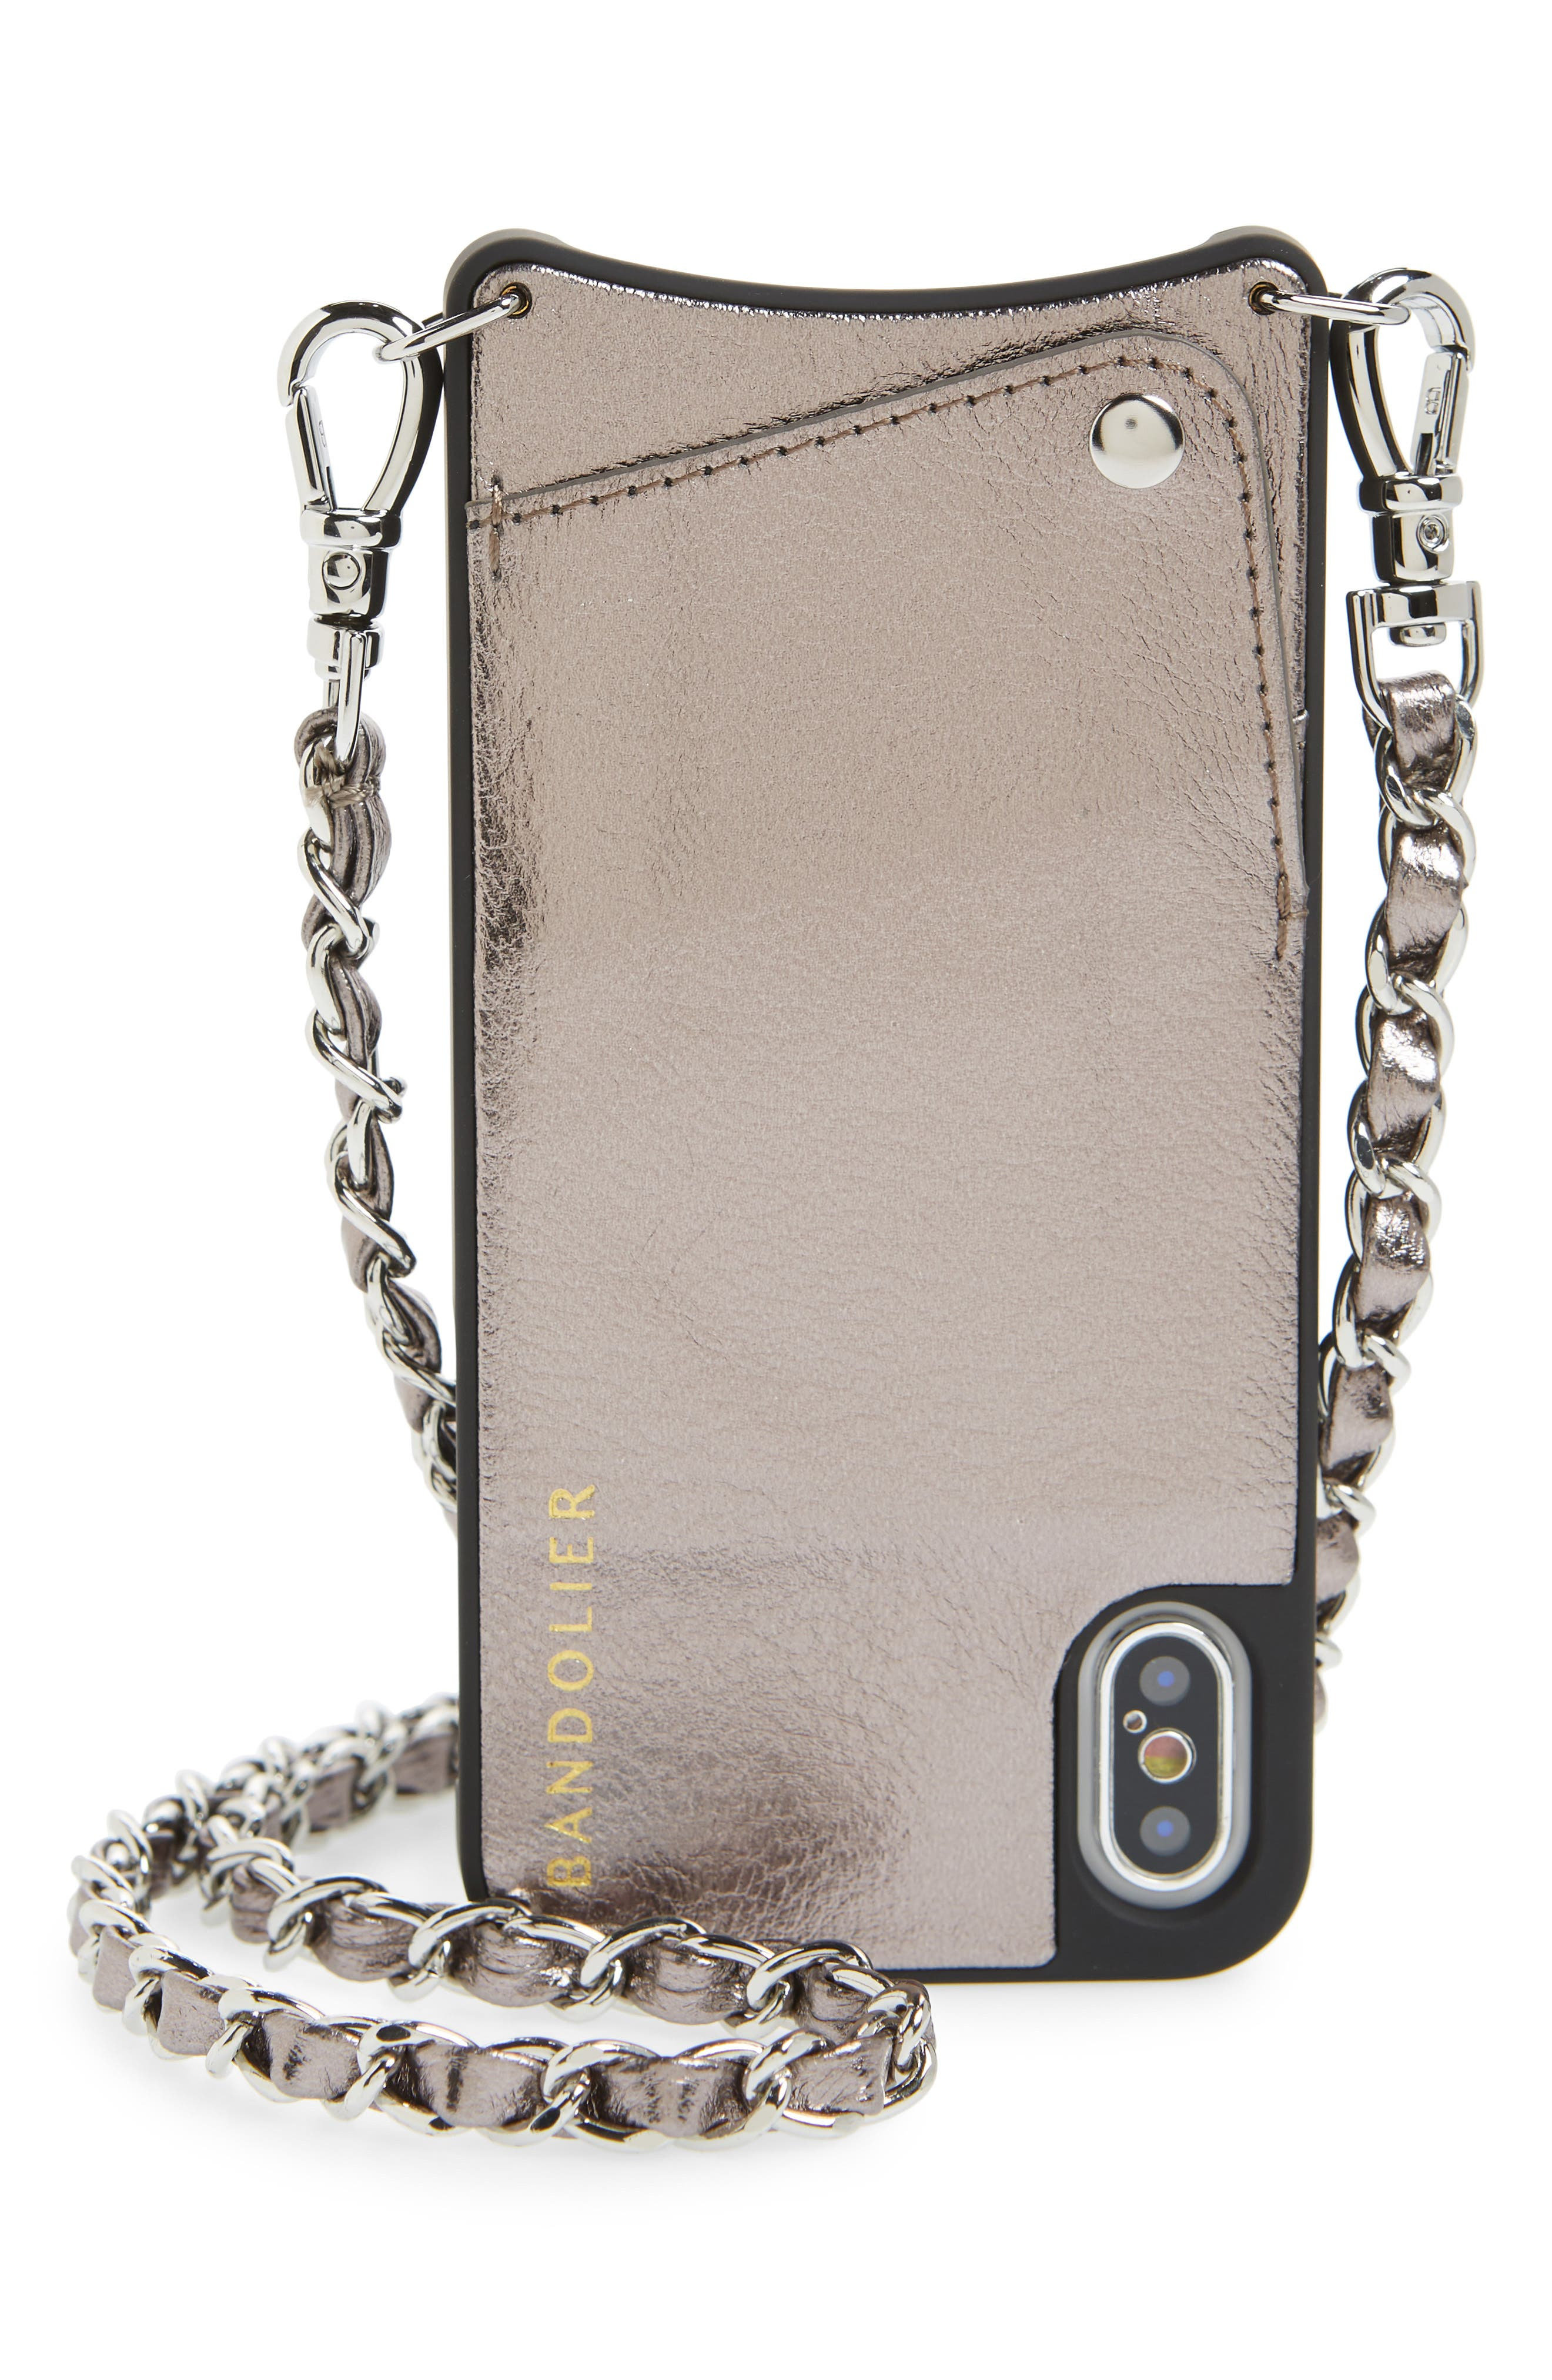 Lucy Faux Leather iPhone X/Xs Crossbody Case,                             Main thumbnail 1, color,                             040